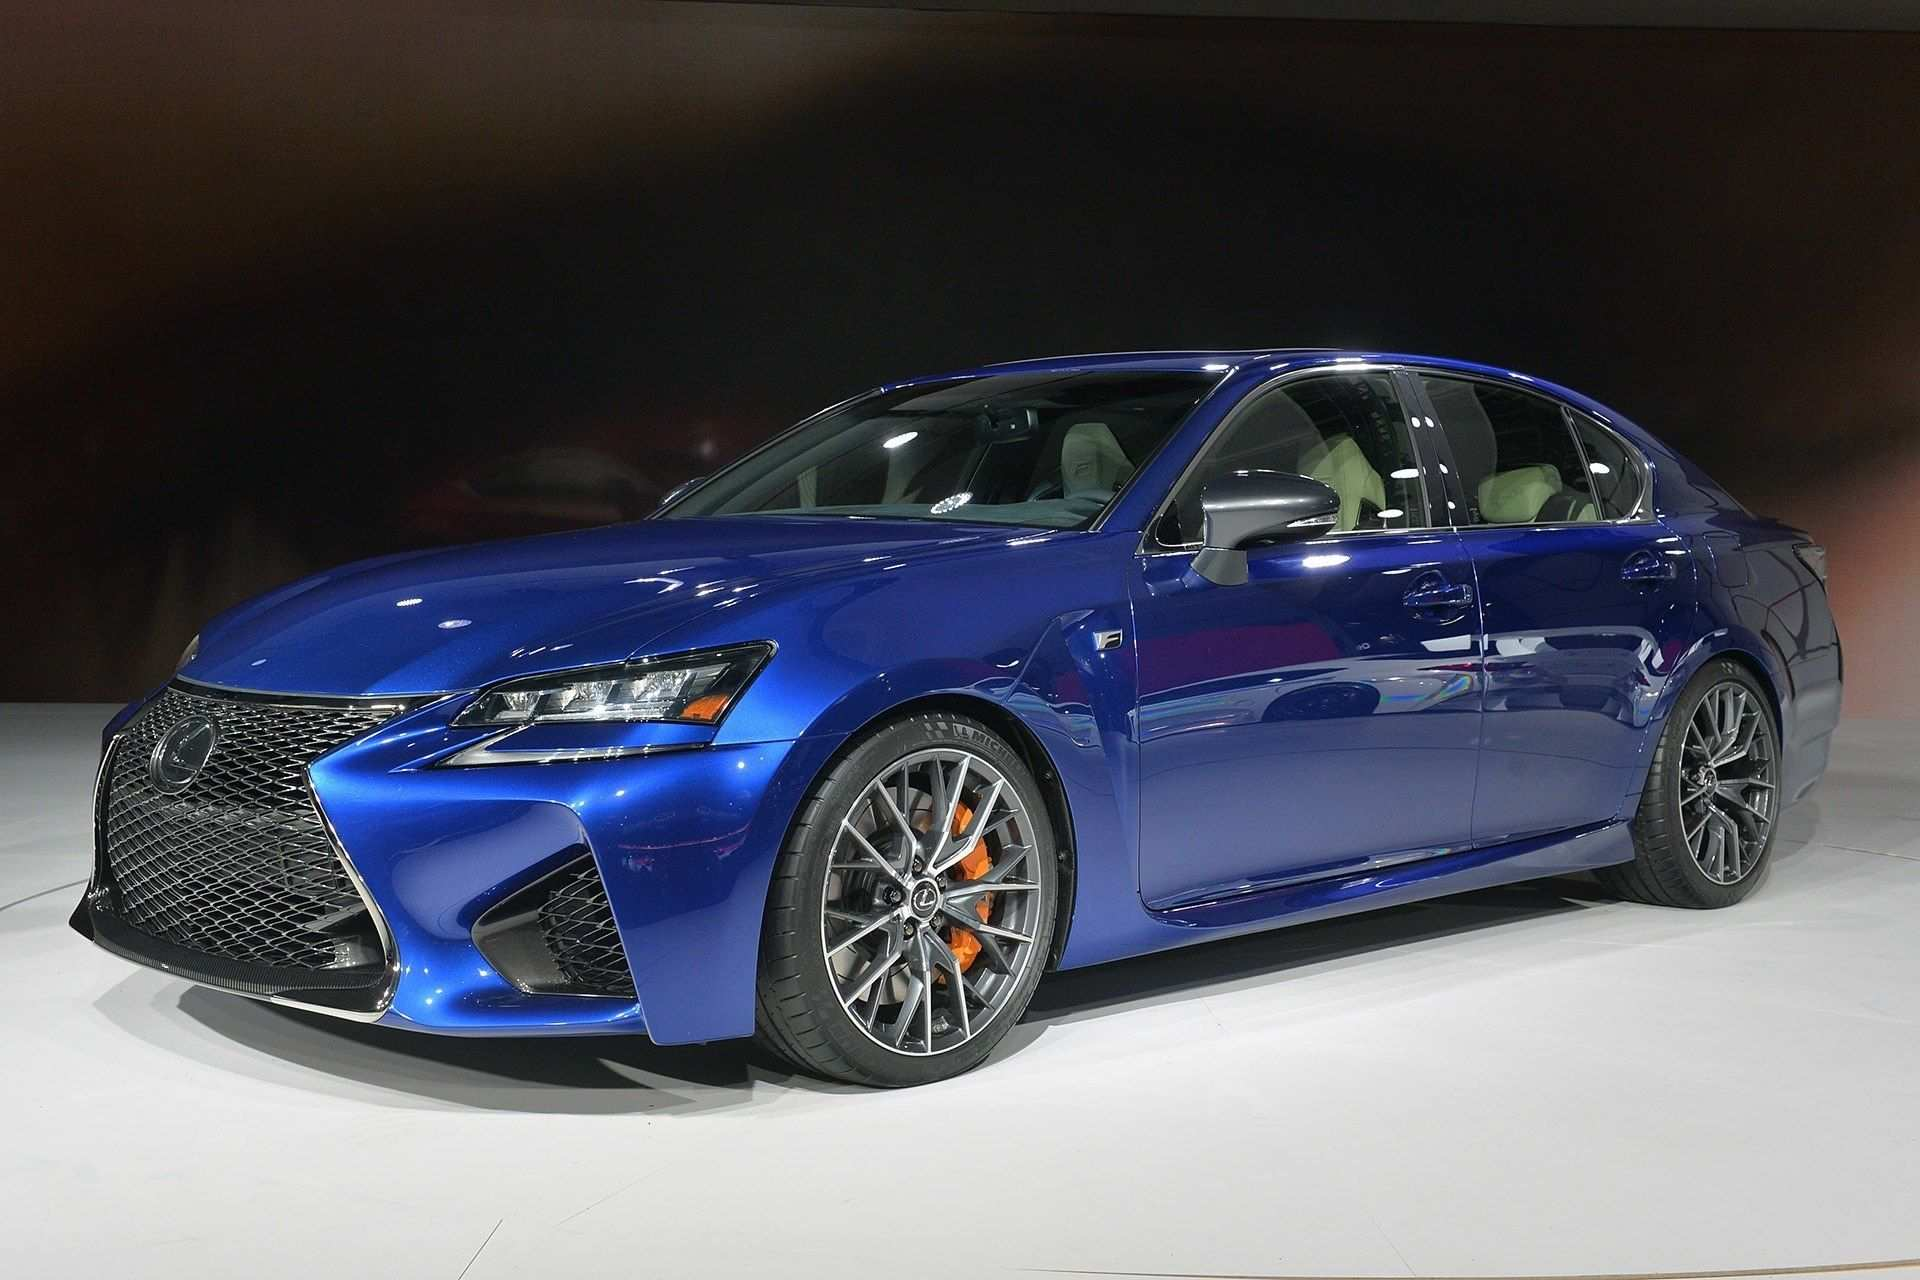 14 All New Lexus Gs F 2020 Redesign And Review